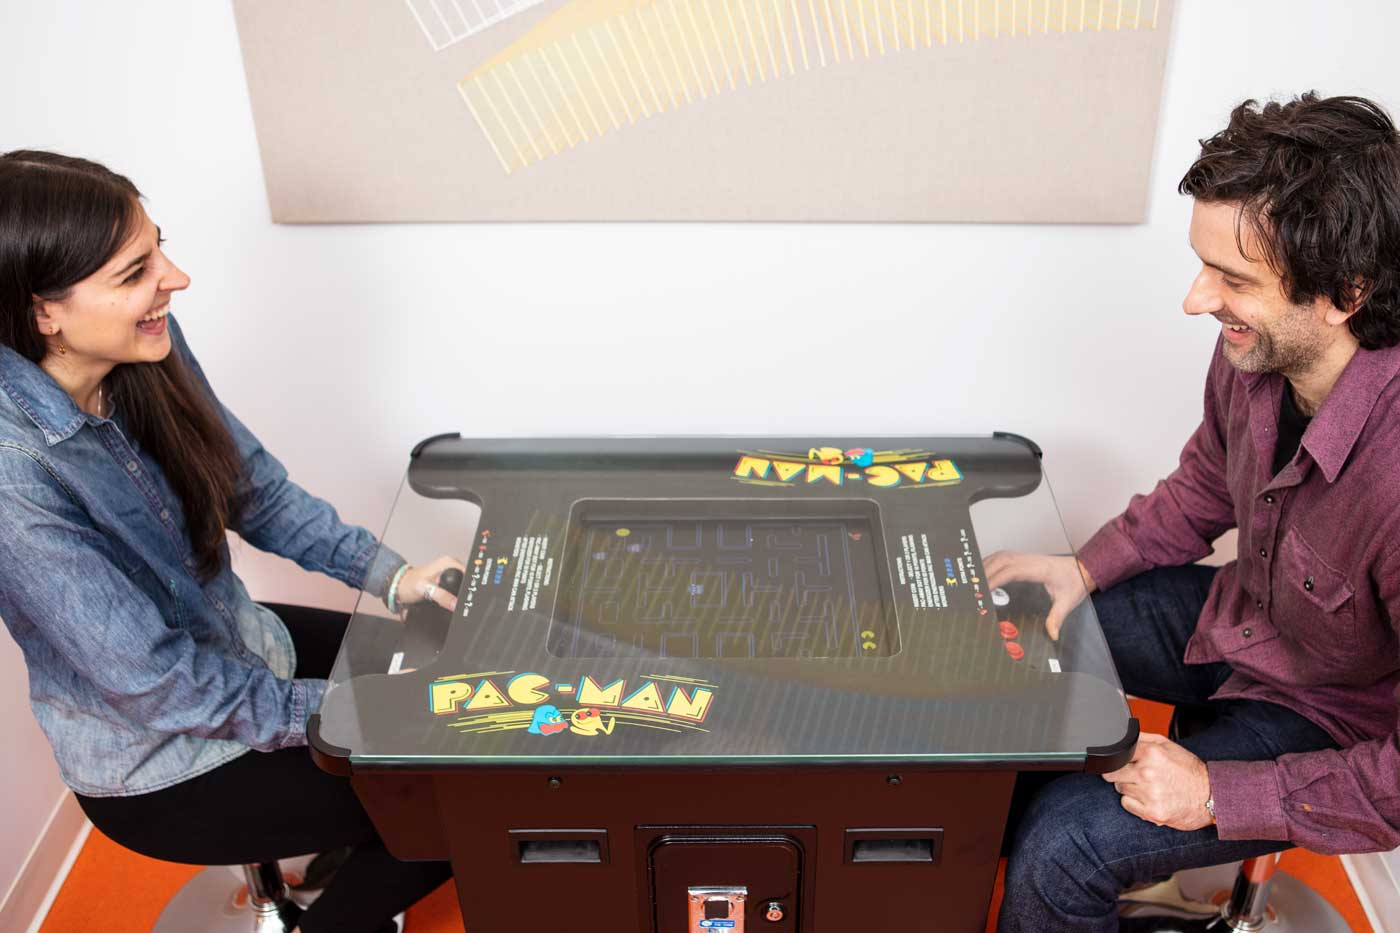 Two colleagues playing PacMan and laughing together.